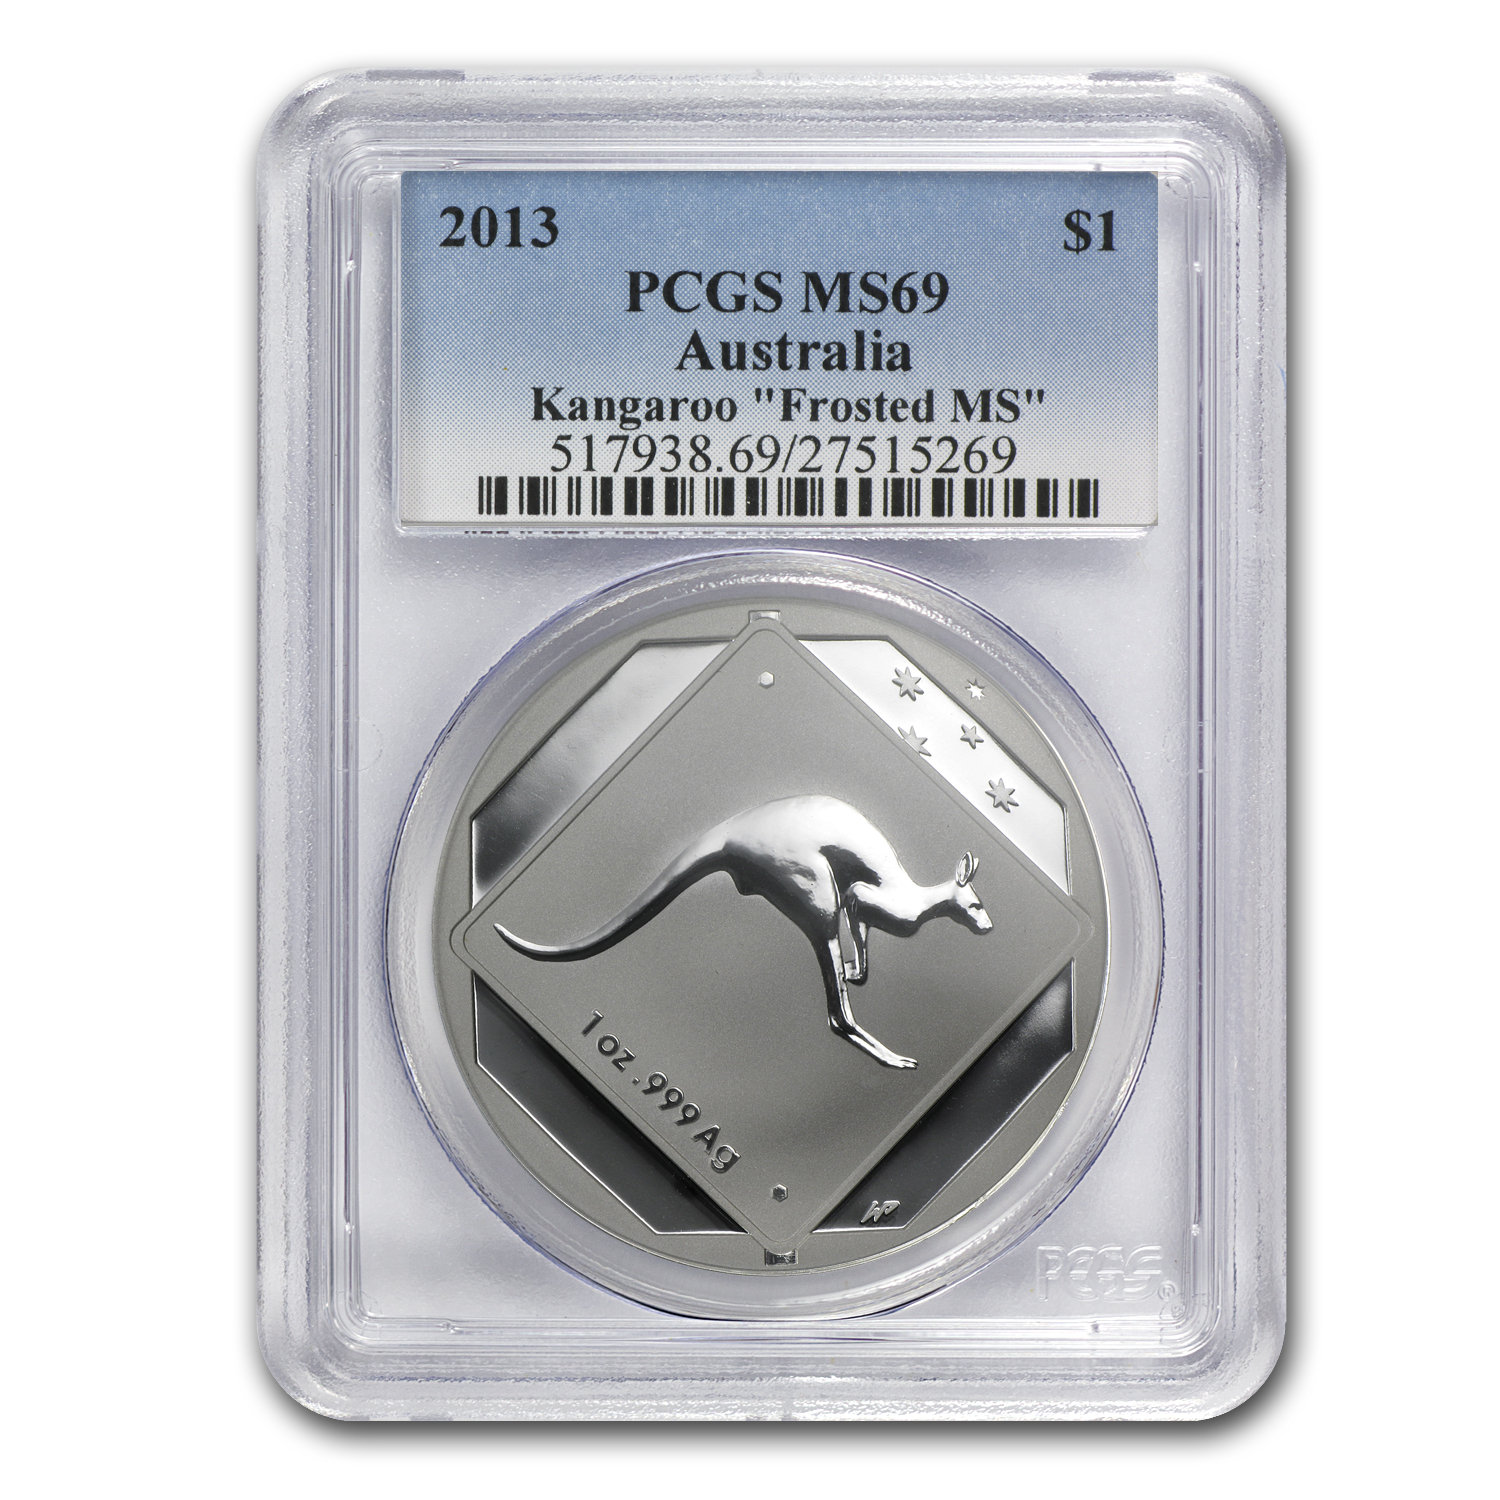 2013 Australia 1 oz Silver Kangaroo Road Sign MS-69 PCGS